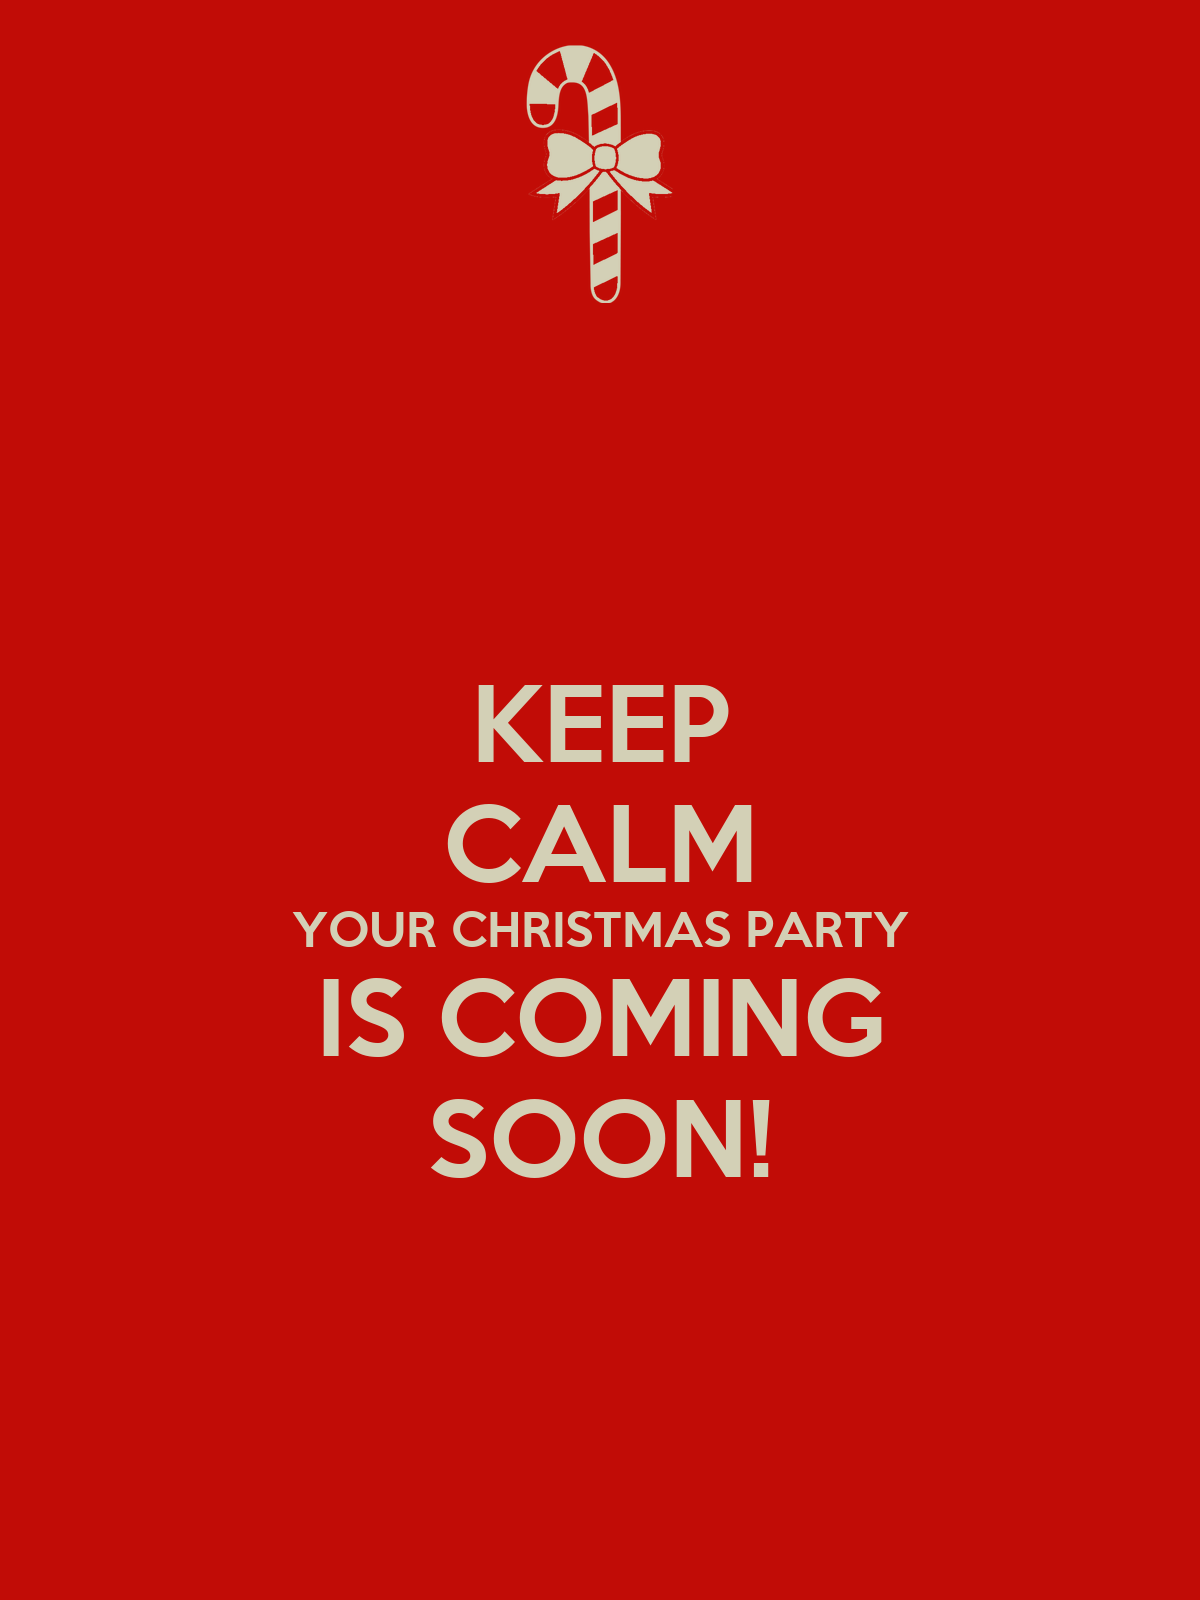 Funny Christmas Party Quotes And Sayings: KEEP CALM YOUR CHRISTMAS PARTY IS COMING SOON! Poster